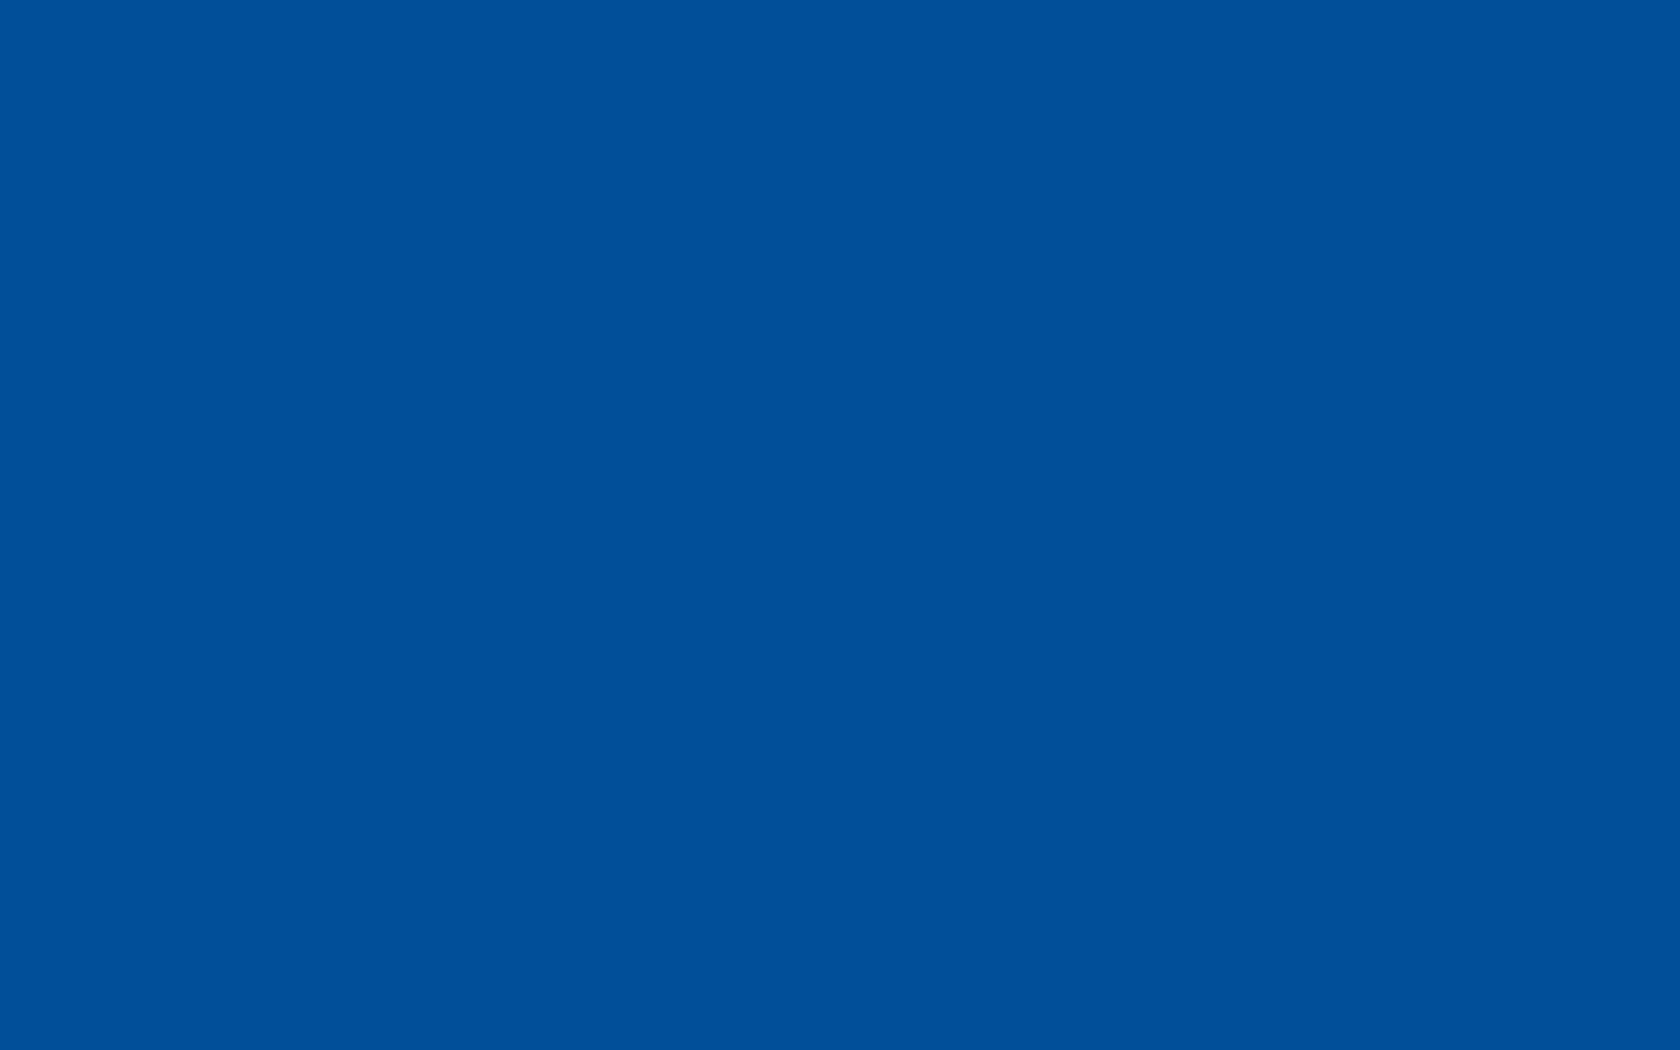 1680x1050 USAFA Blue Solid Color Background